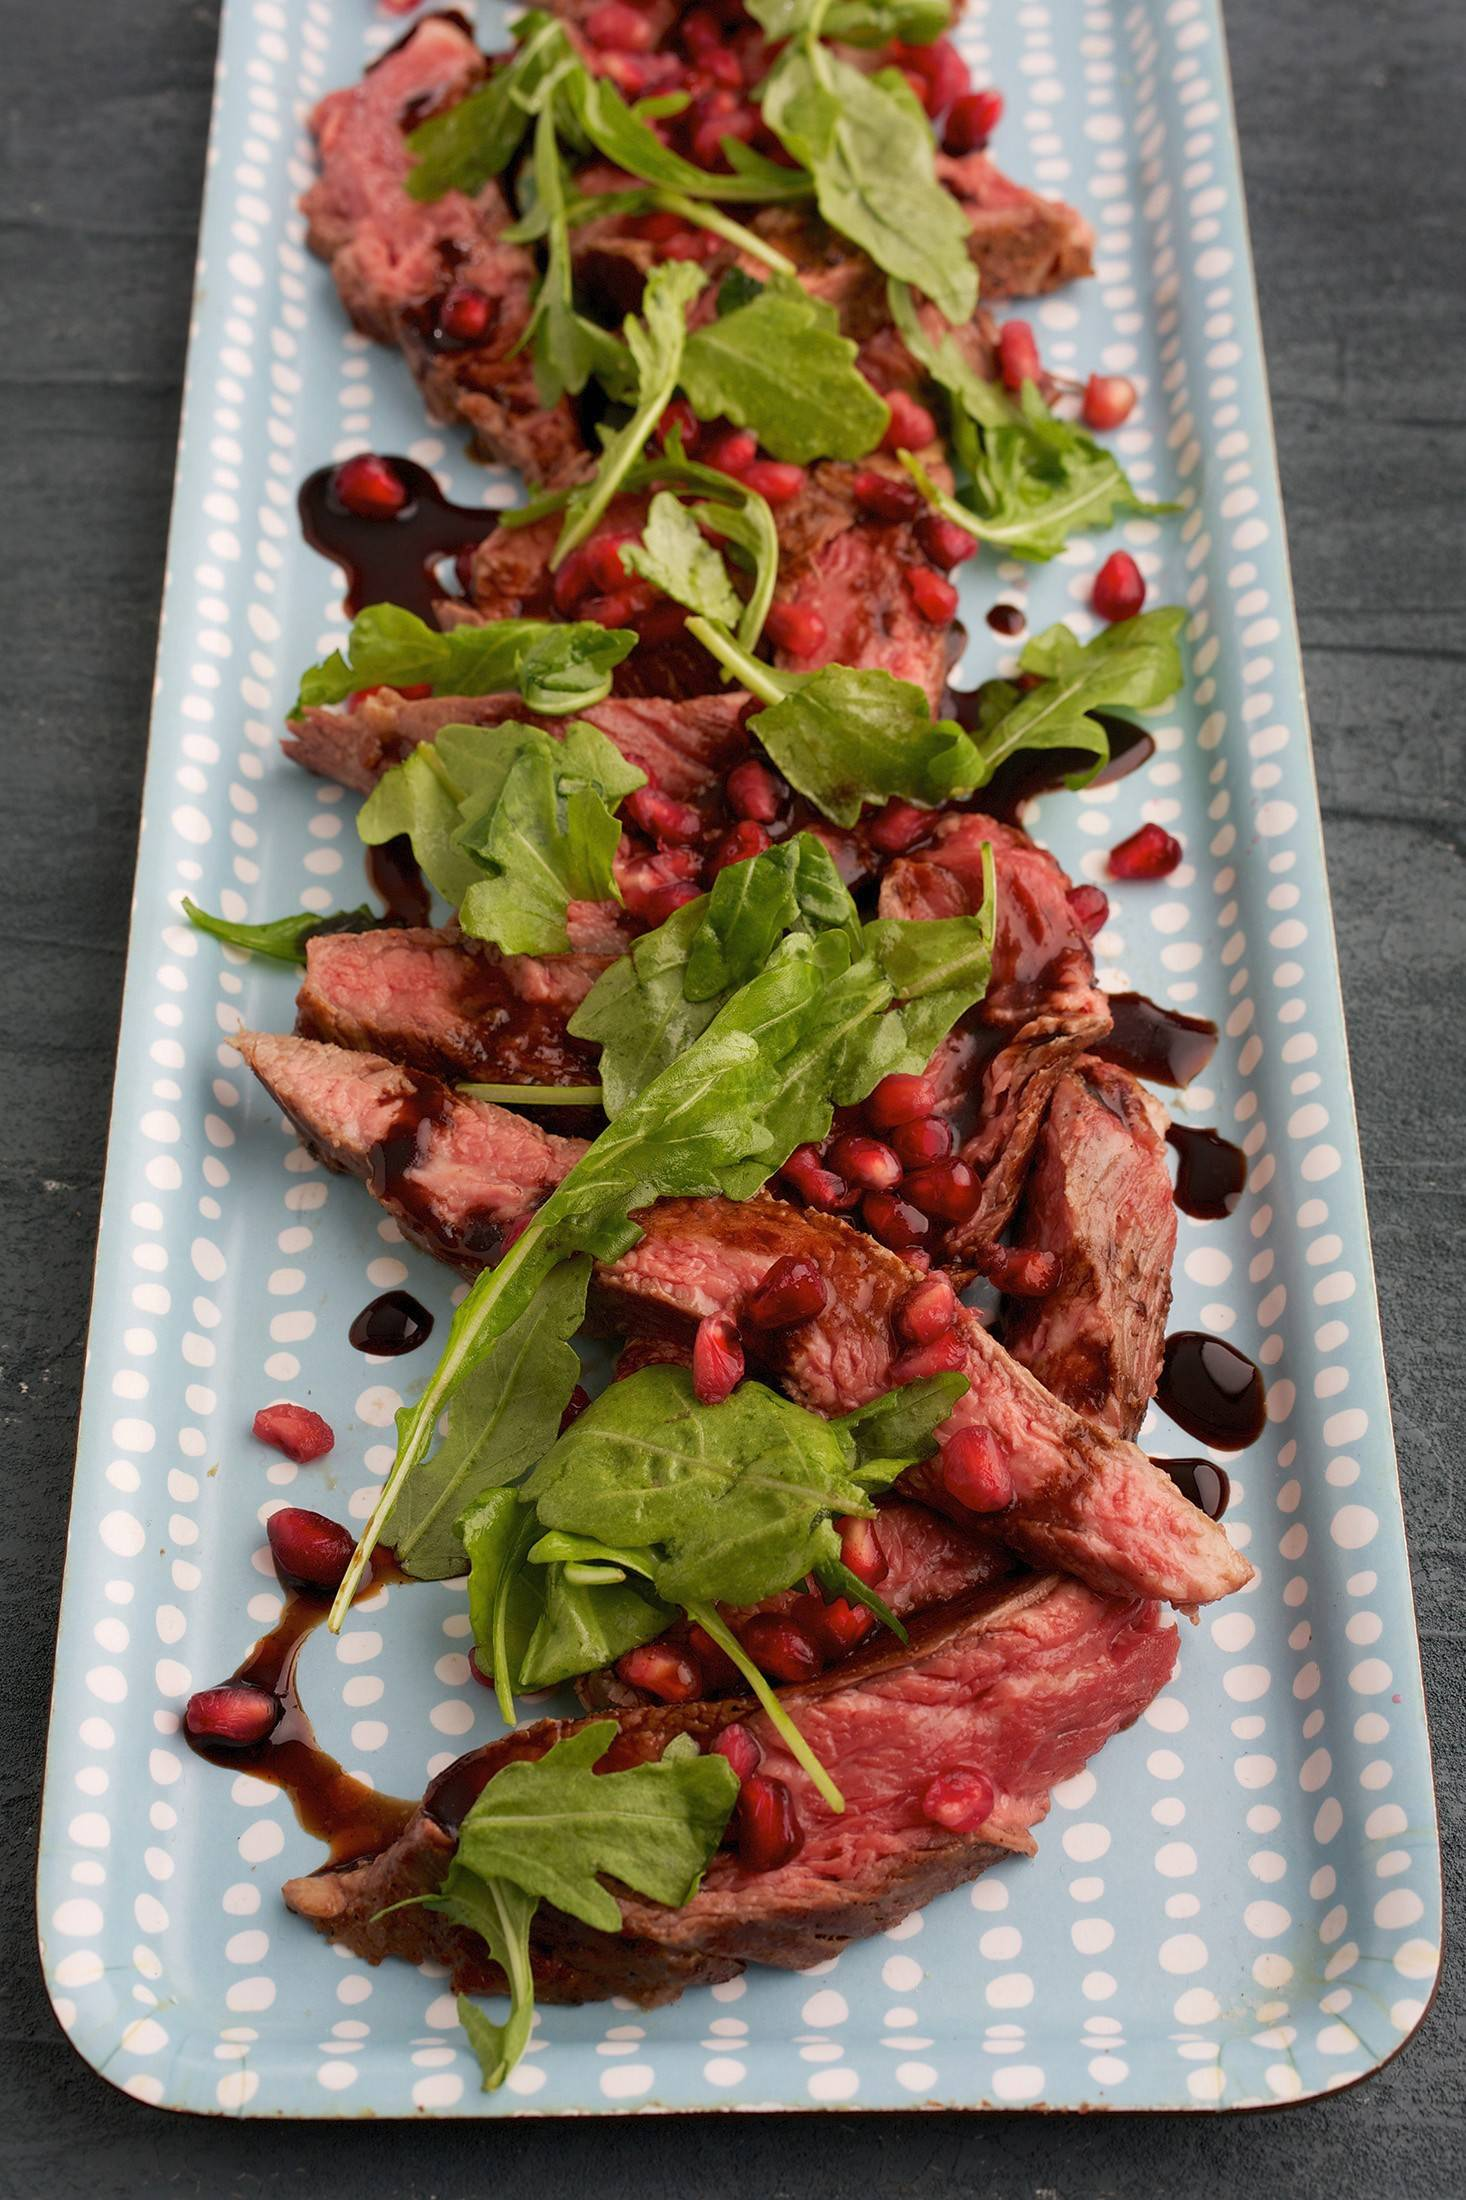 Seared Beef With Pomegranate and Balsamic Dressing